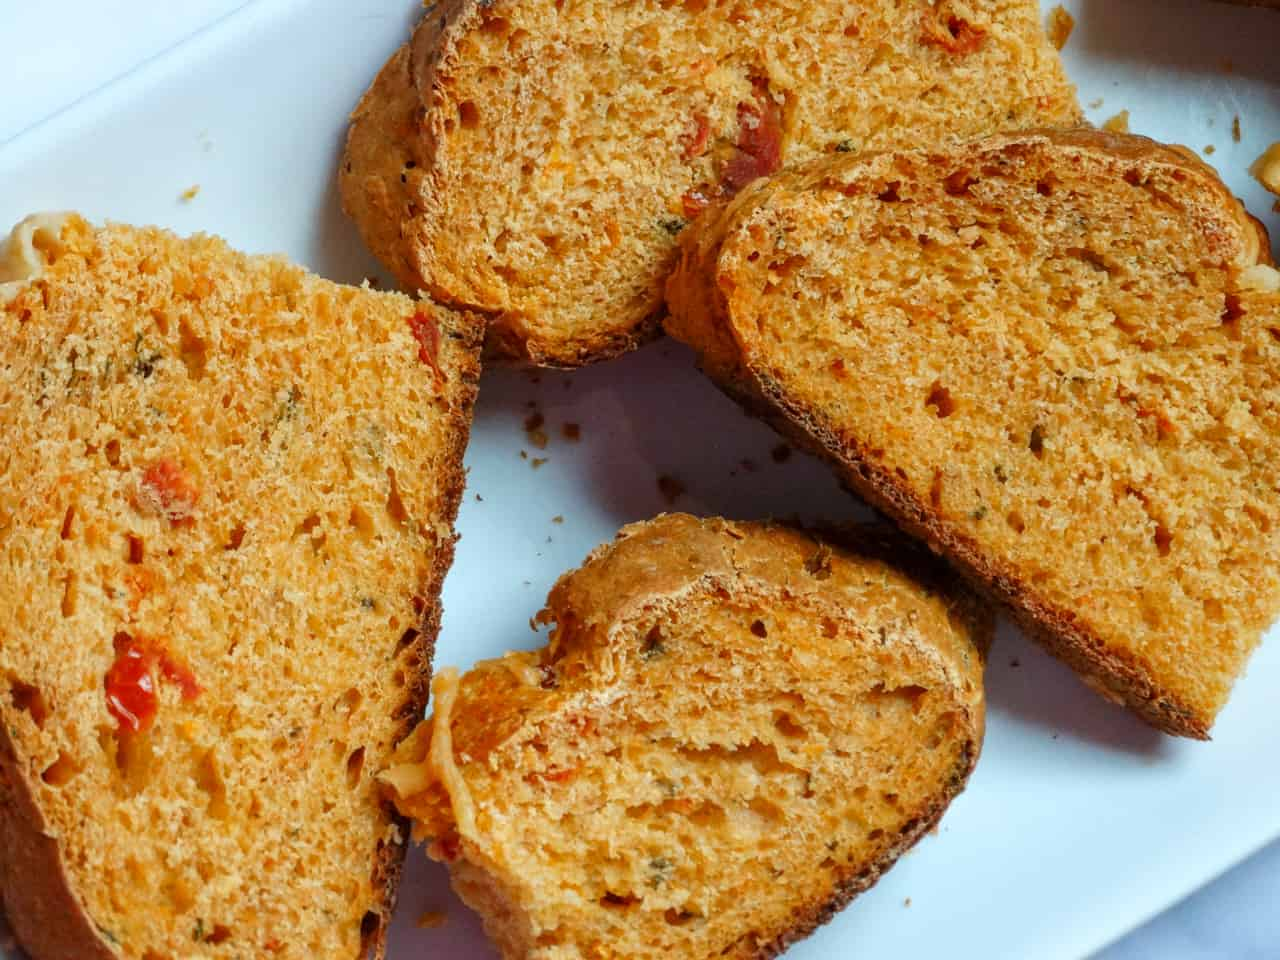 sun dried tomato basil bread made by hand sliced and on a white plate